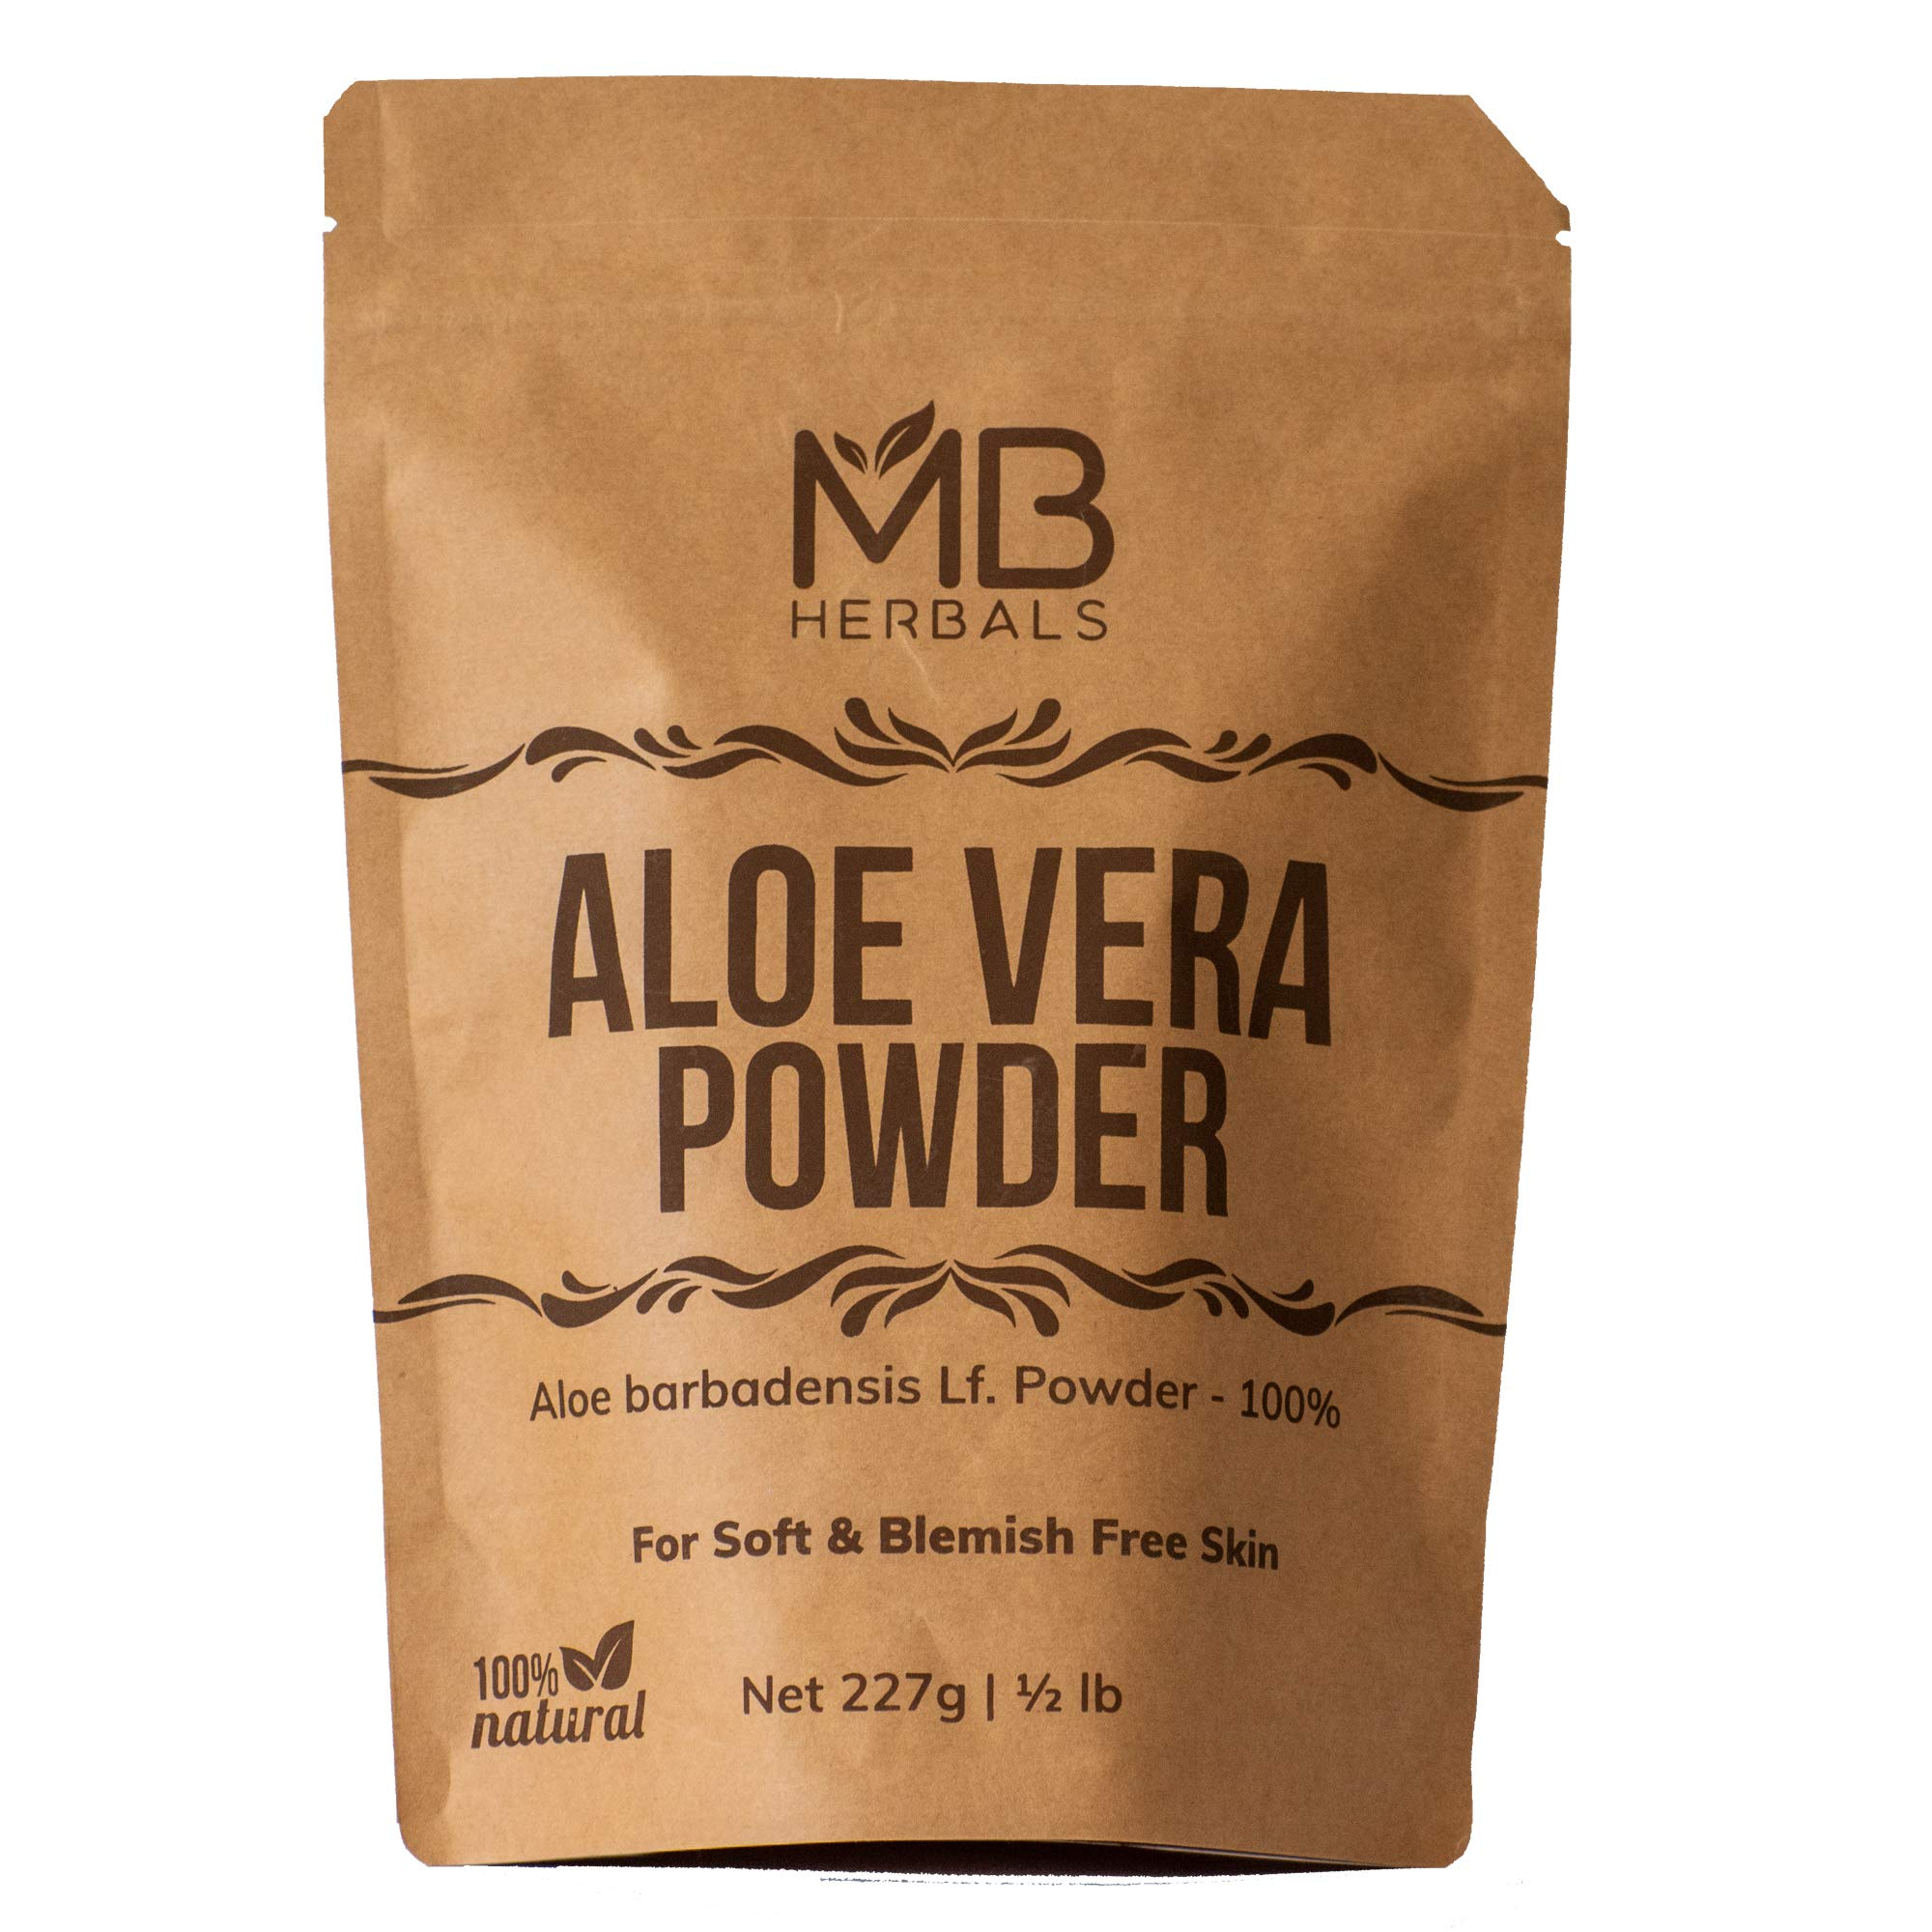 MB Herbals Aloe Vera Powder 454g   1 LB Large Pack   100% Pure & Organically Cultivated Aloevera Powder   Natural Skin Moisturizer   Controls Blemish Acne Pimples & Fine Lines   External Use Only